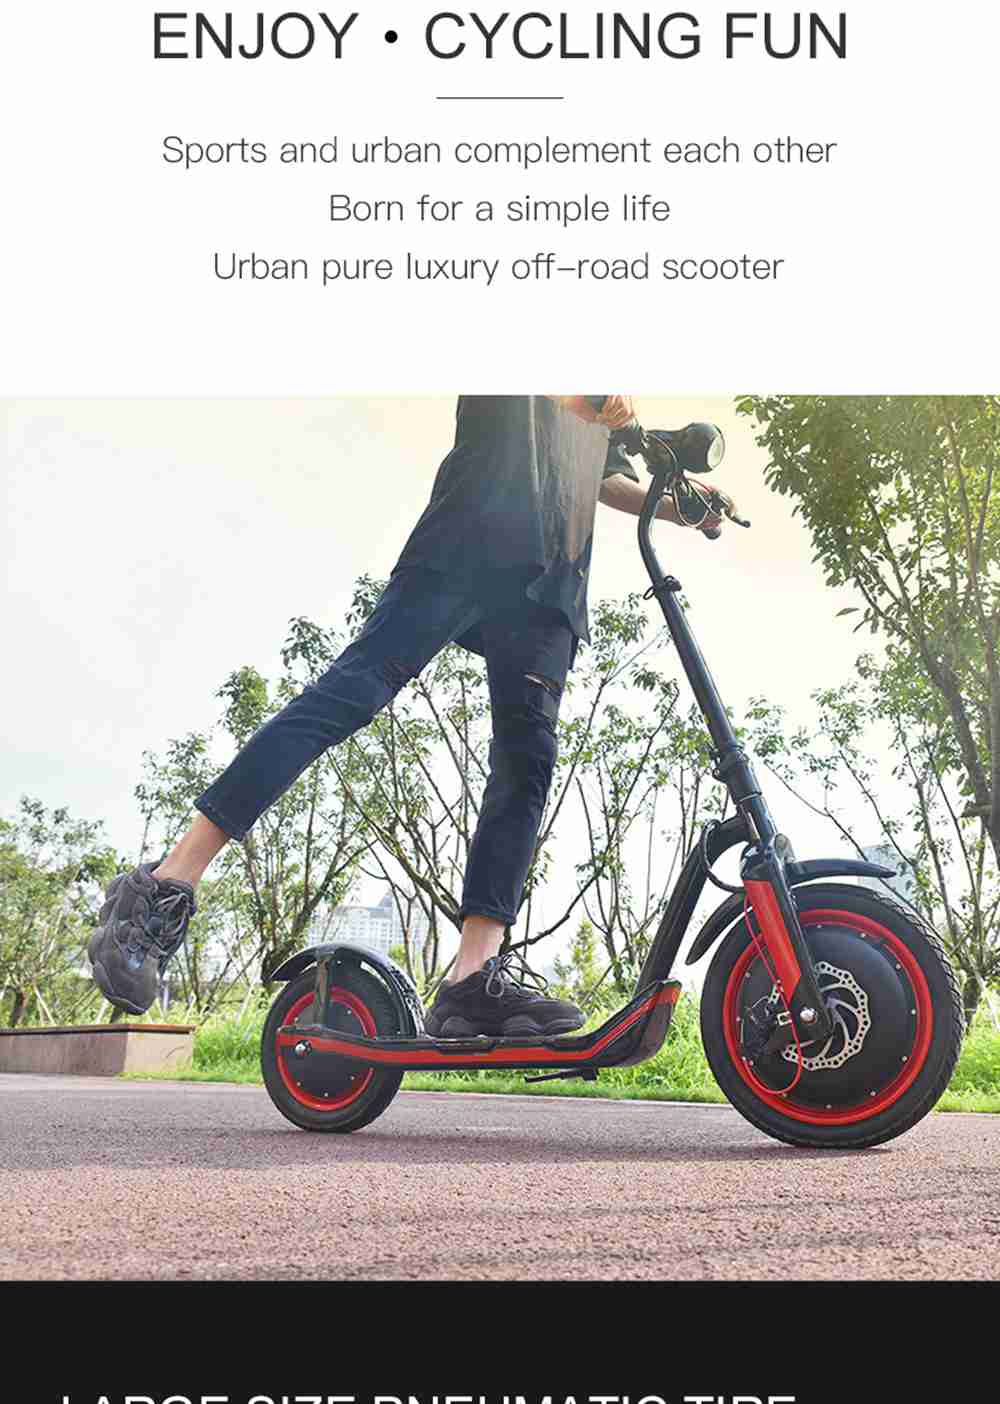 iMortor C1 Foldable Off-road Electric Scooter 350W Motor Max 30km/h 9.6Ah Battery16 Inch Pneumatic Front Tire - White